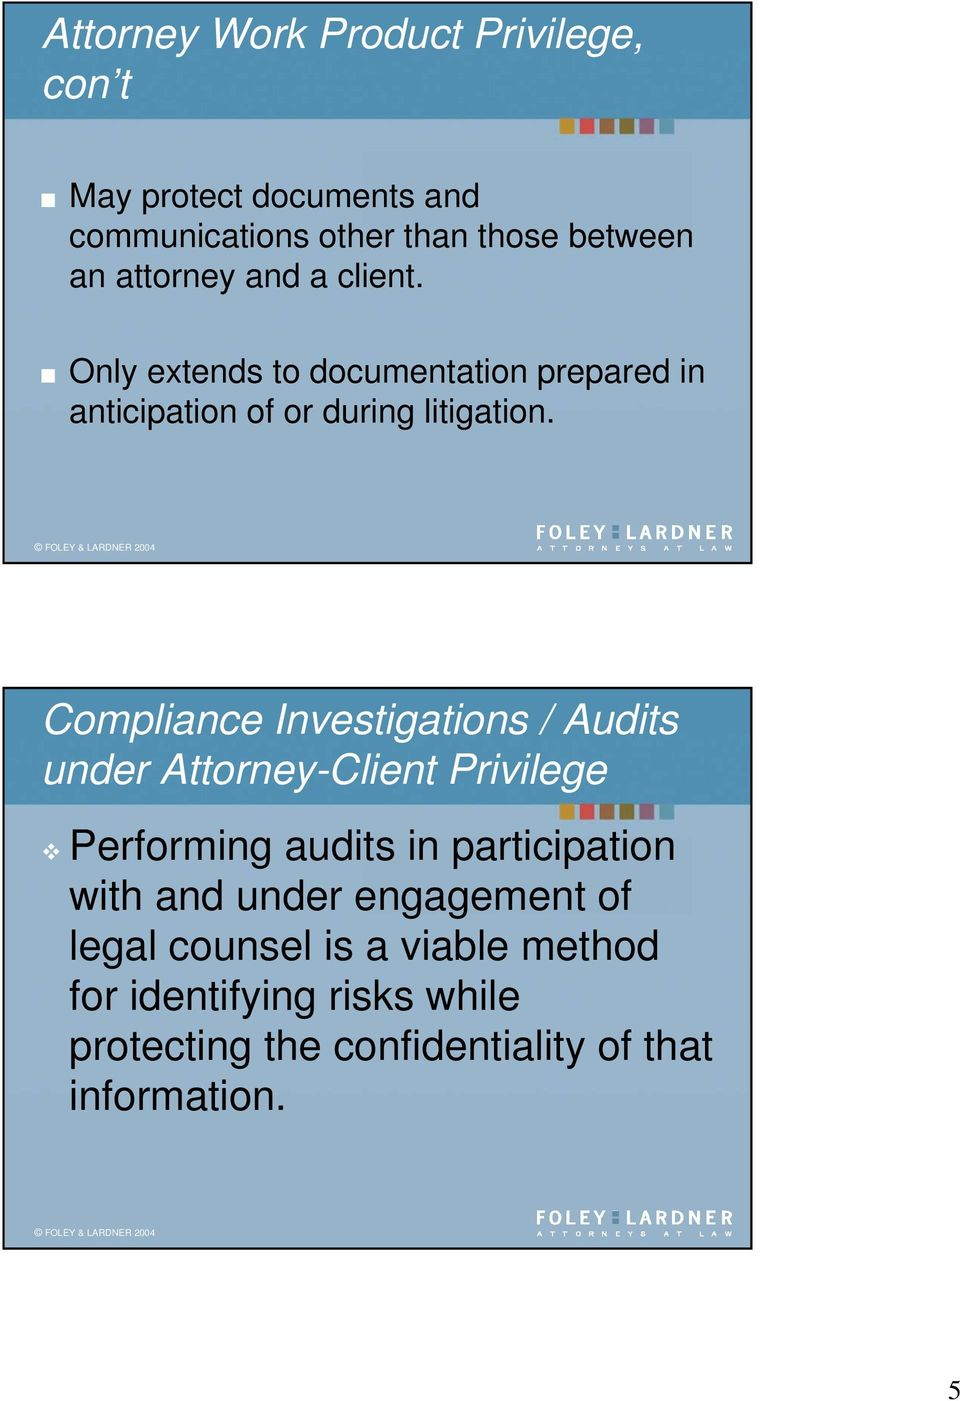 Compliance Investigations / Audits under Attorney-Client Privilege Performing audits in participation with and